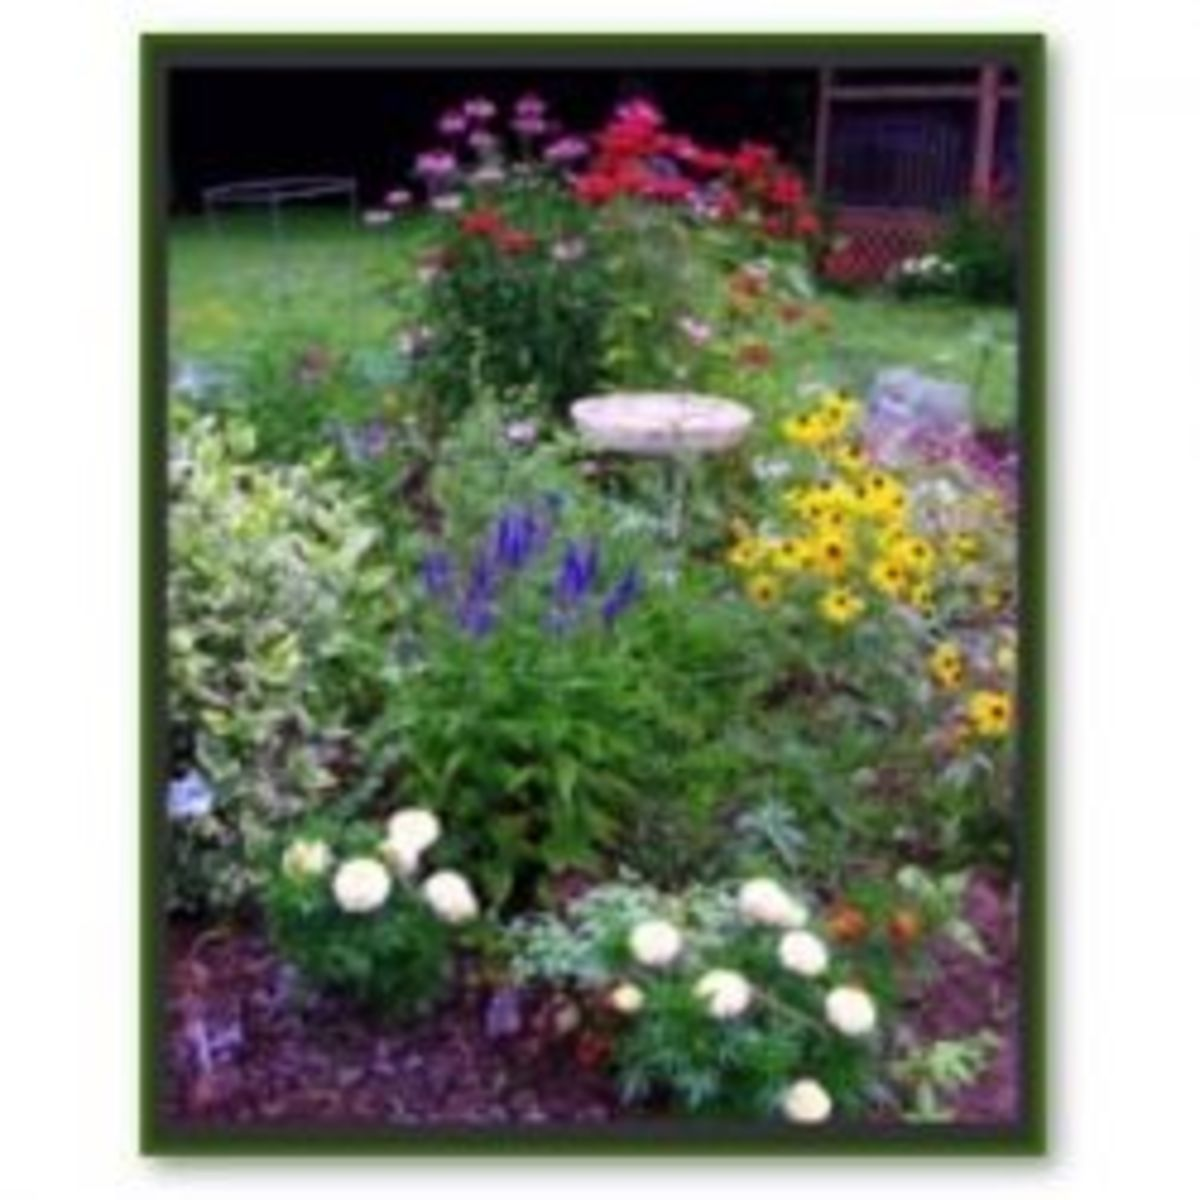 The lovely look of a riot of colors and plants give the cottage garden a lush appearance.